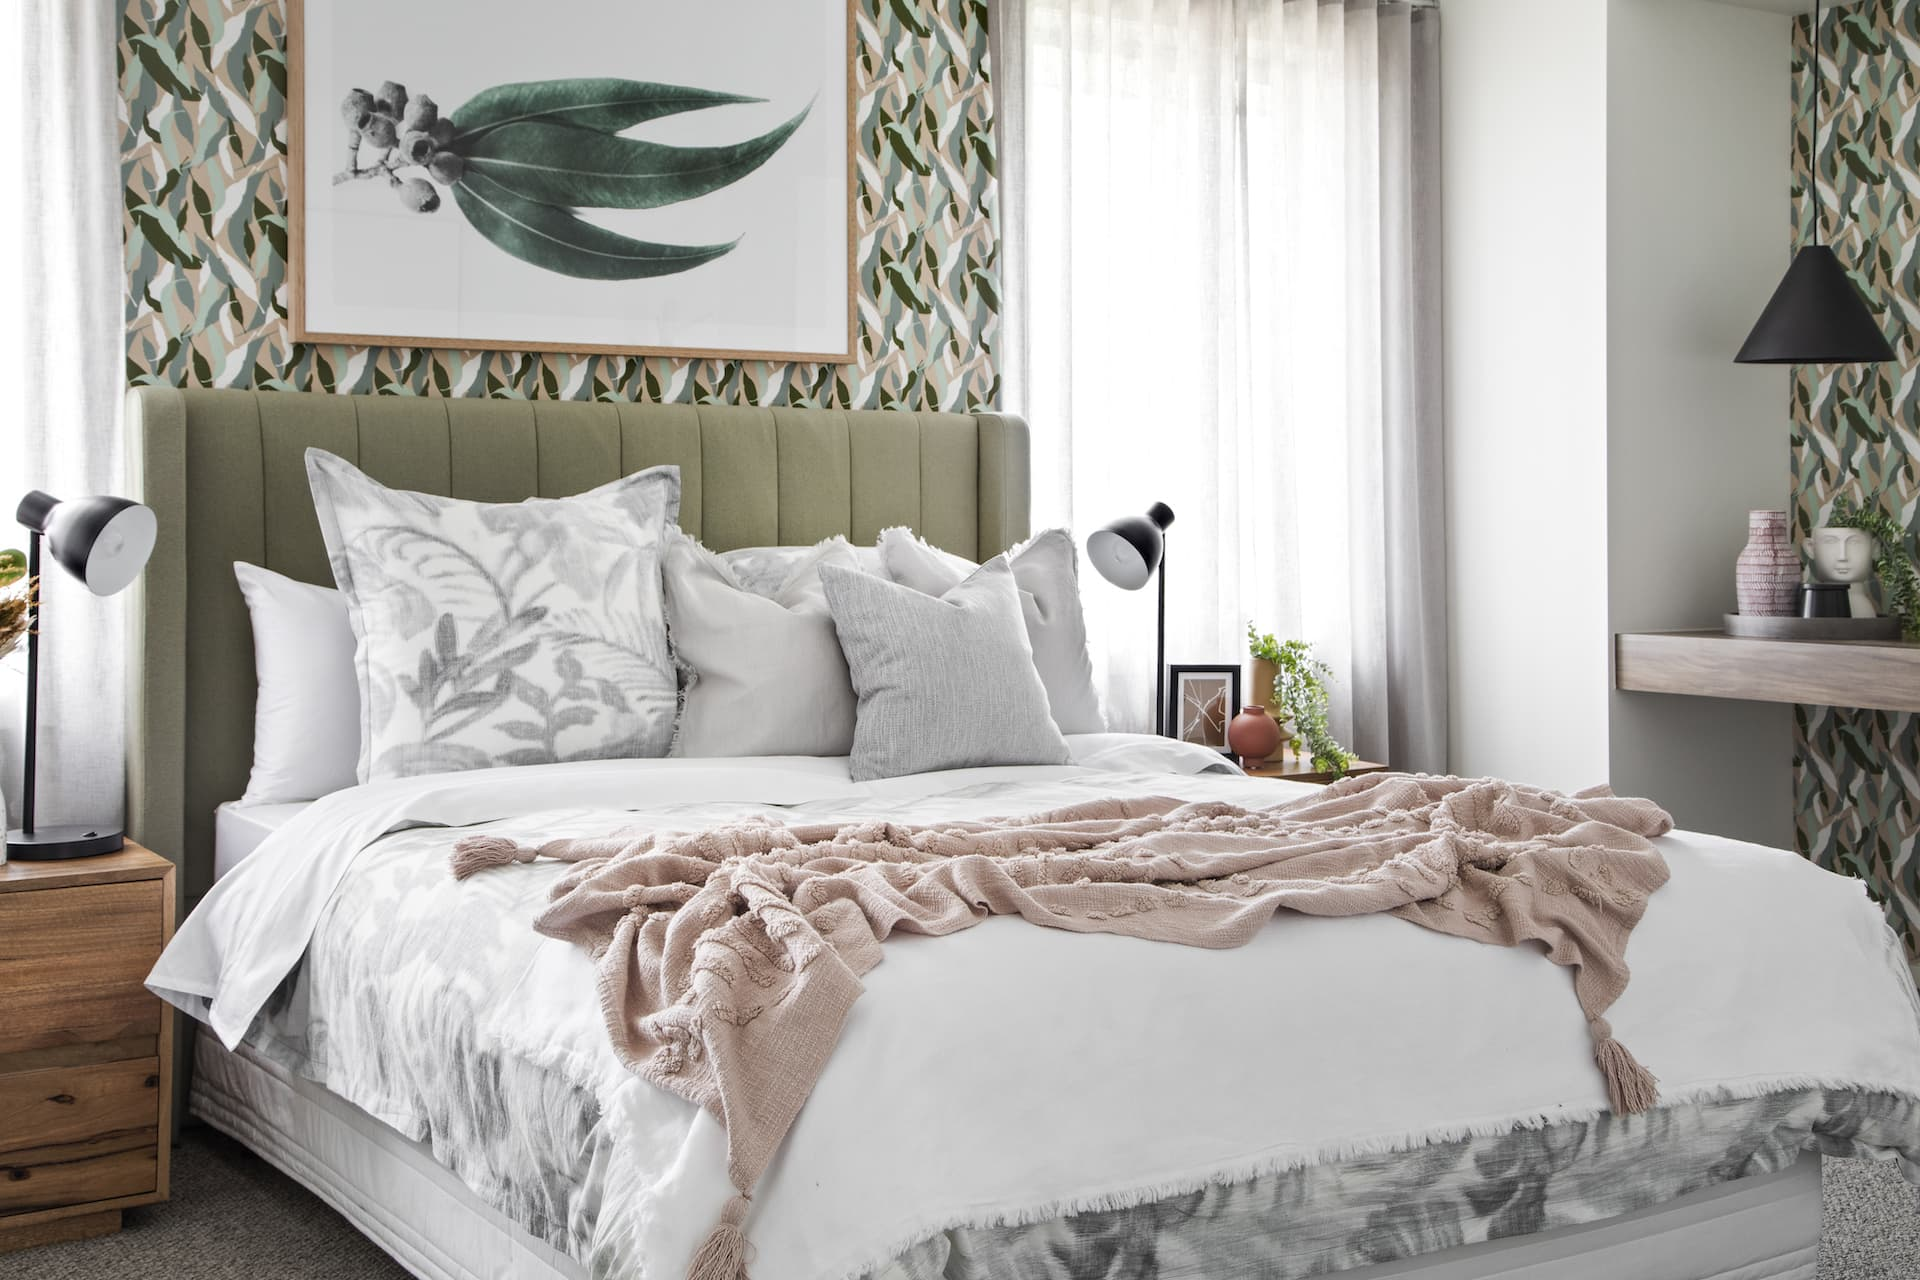 lorraine lea mimosa quilt cover set in australiana bedroom design with gumnut wallpaper